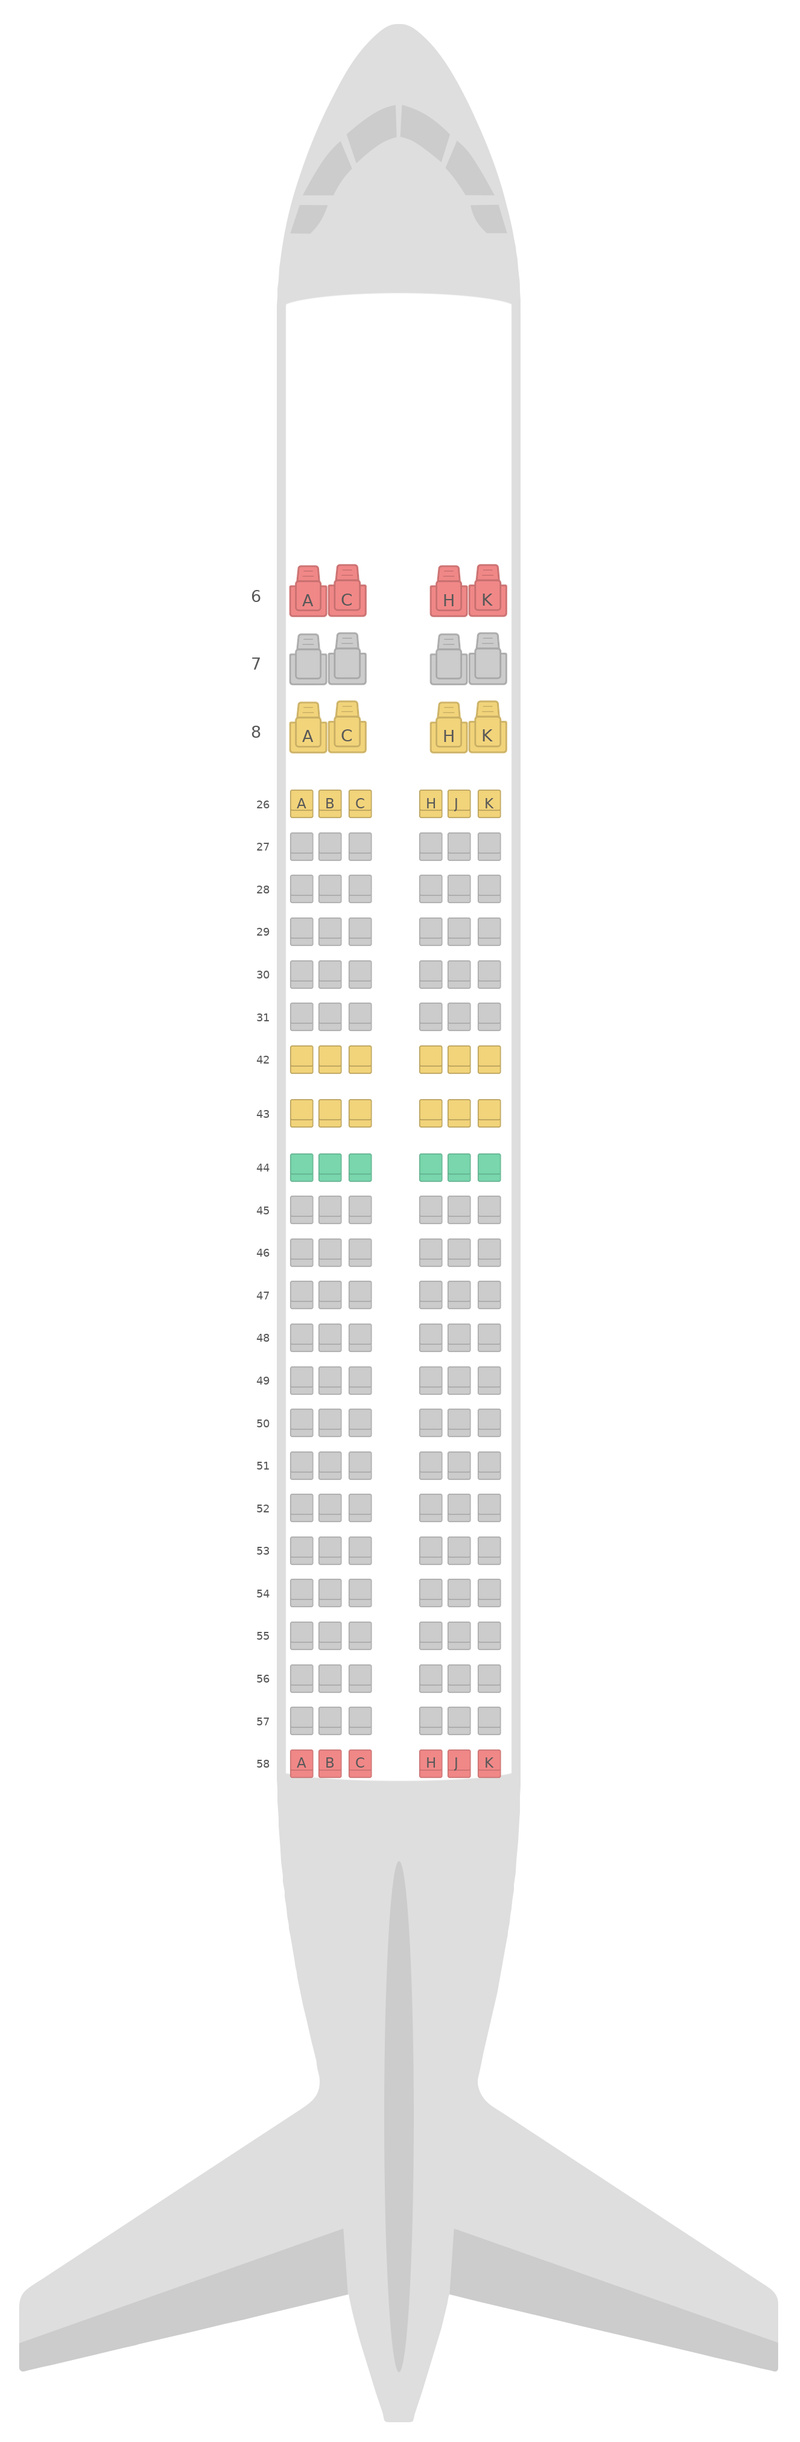 Seat Map Royal Brunei Airlines Airbus A320neo (32N)